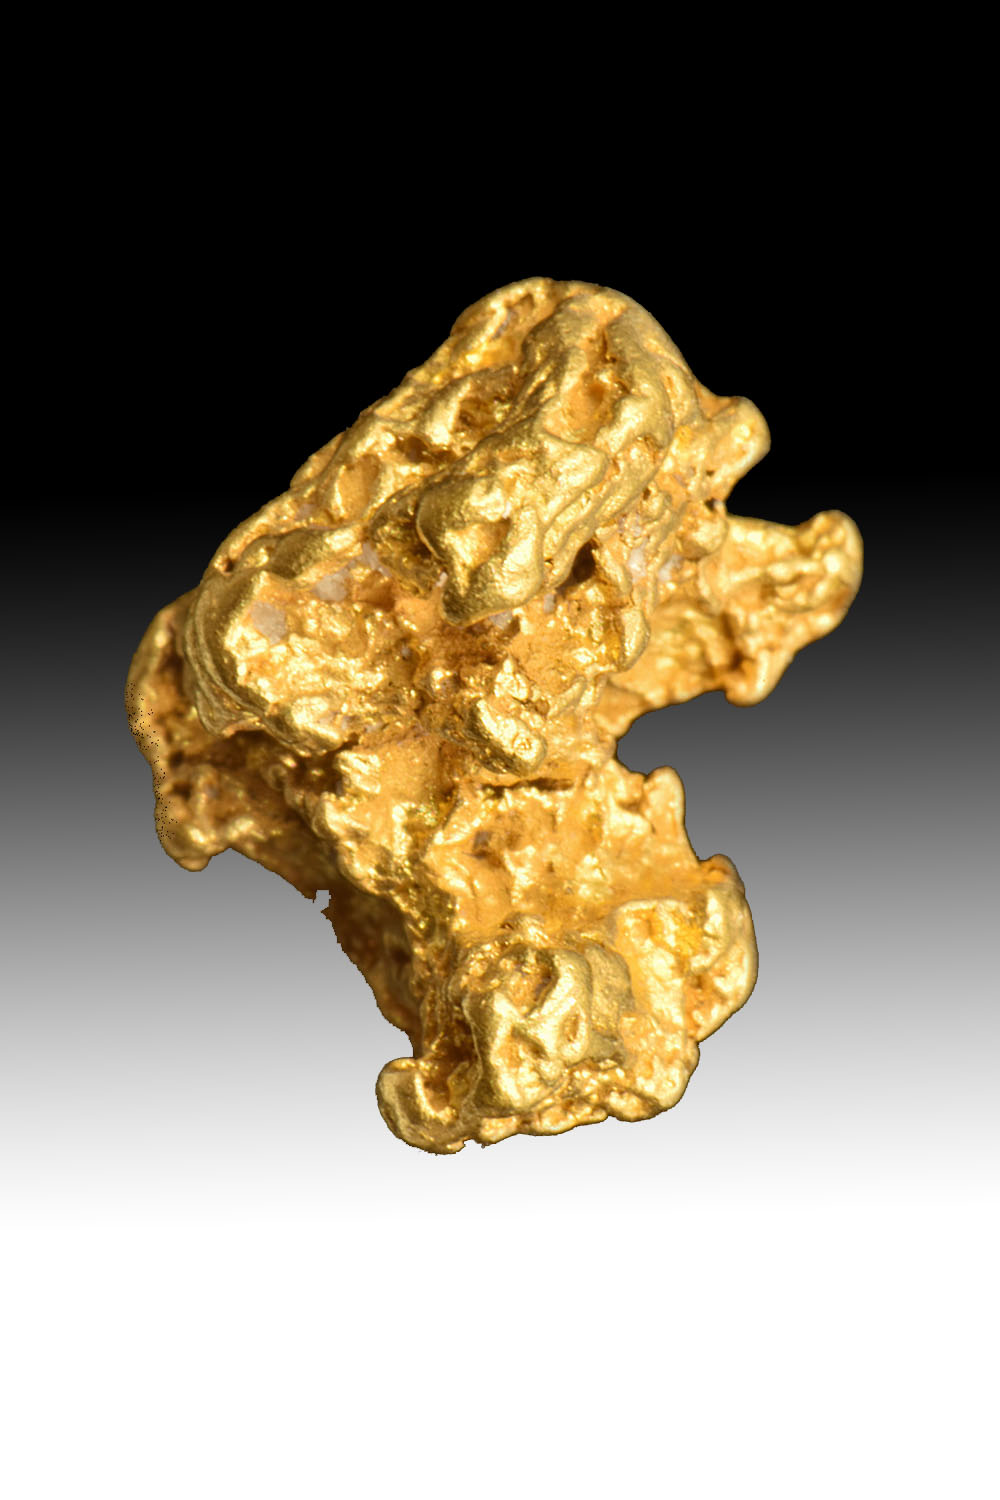 Plump and Detailed - Uniquely Shaped Gold Nugget from Australia